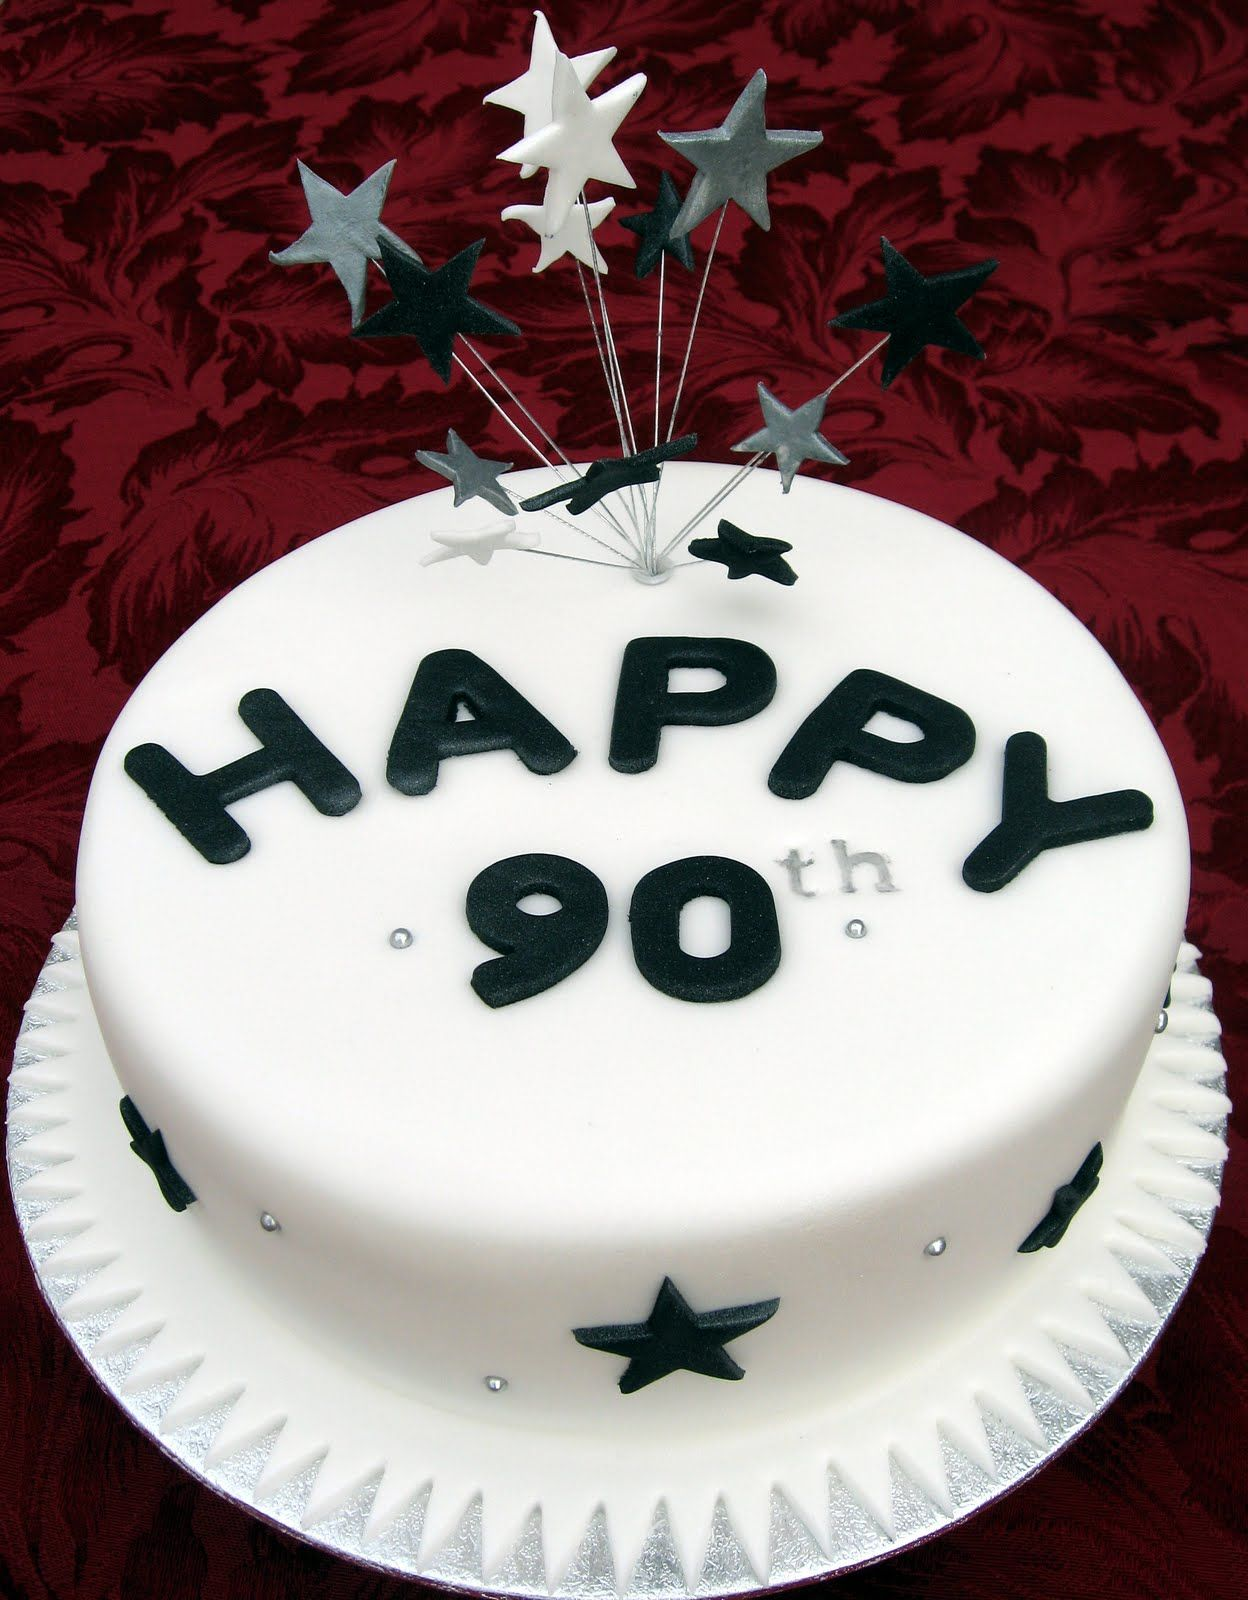 90th birthday cakes Cakes Specialty anniversary cakes and